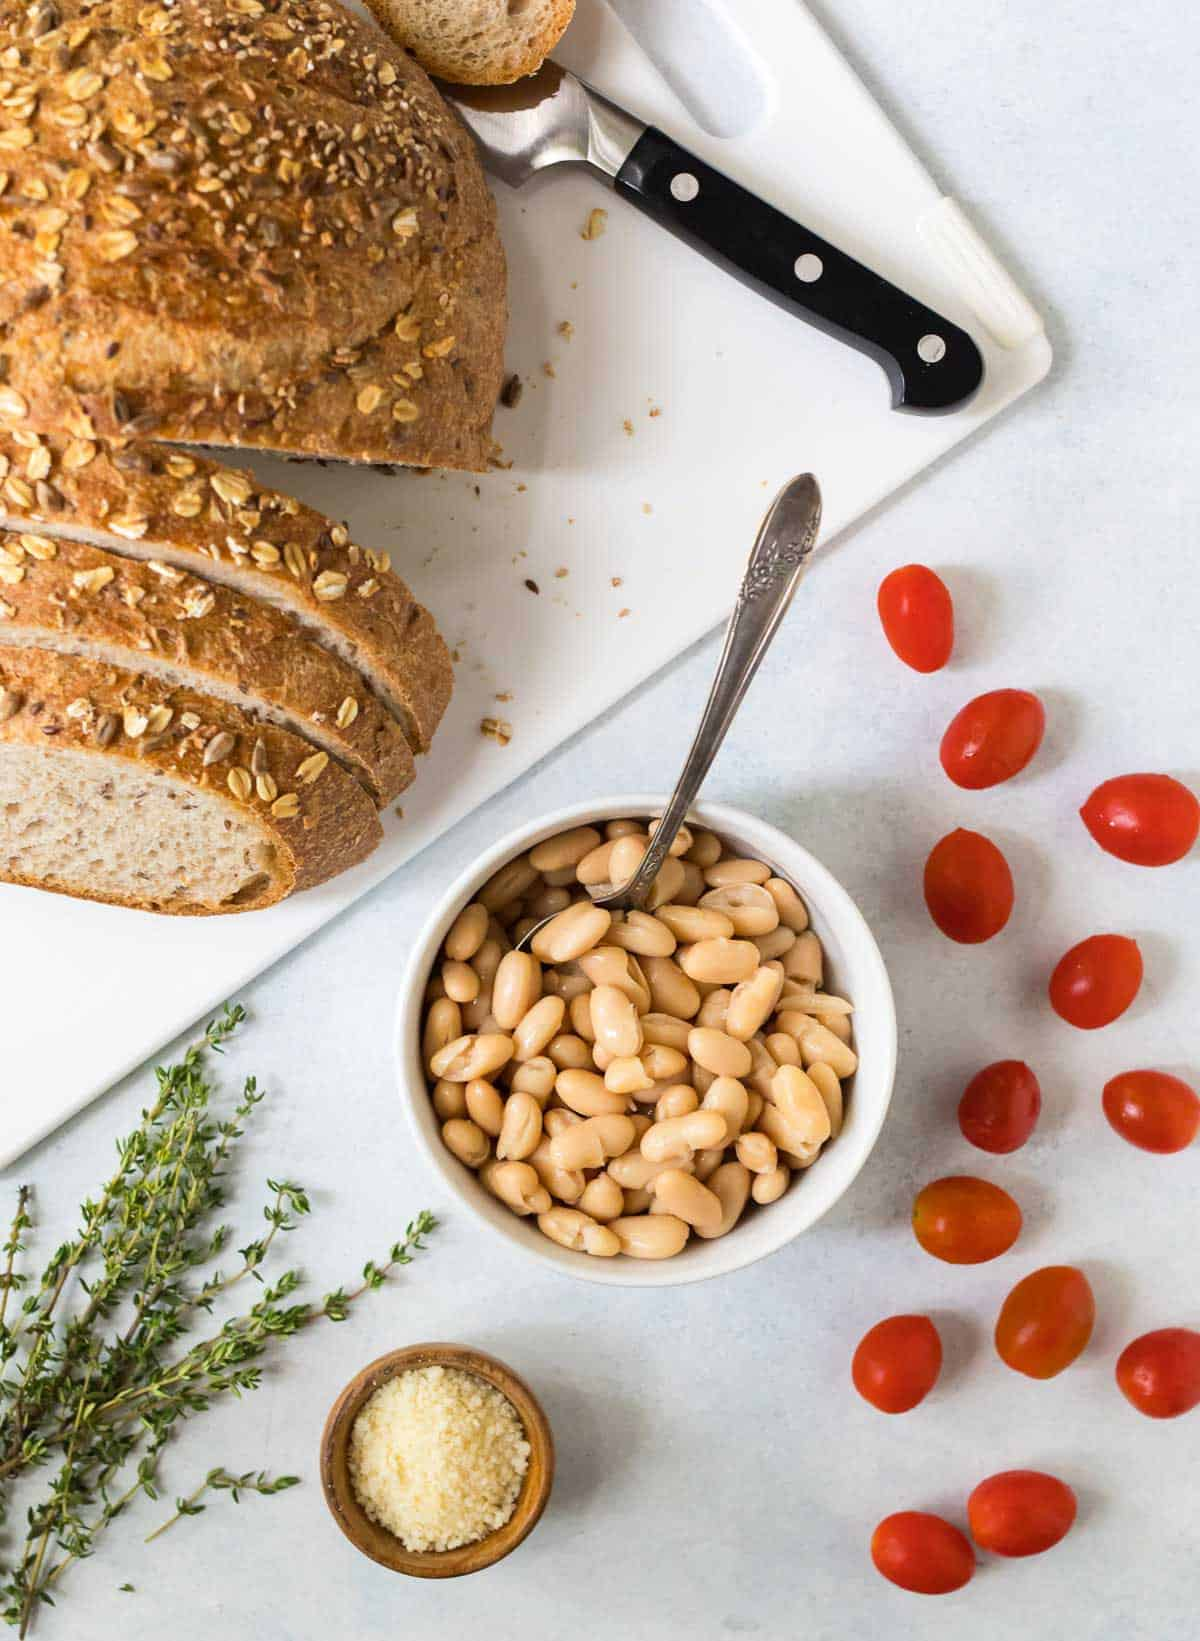 Cannellini beans served on toast with tomato and garlic